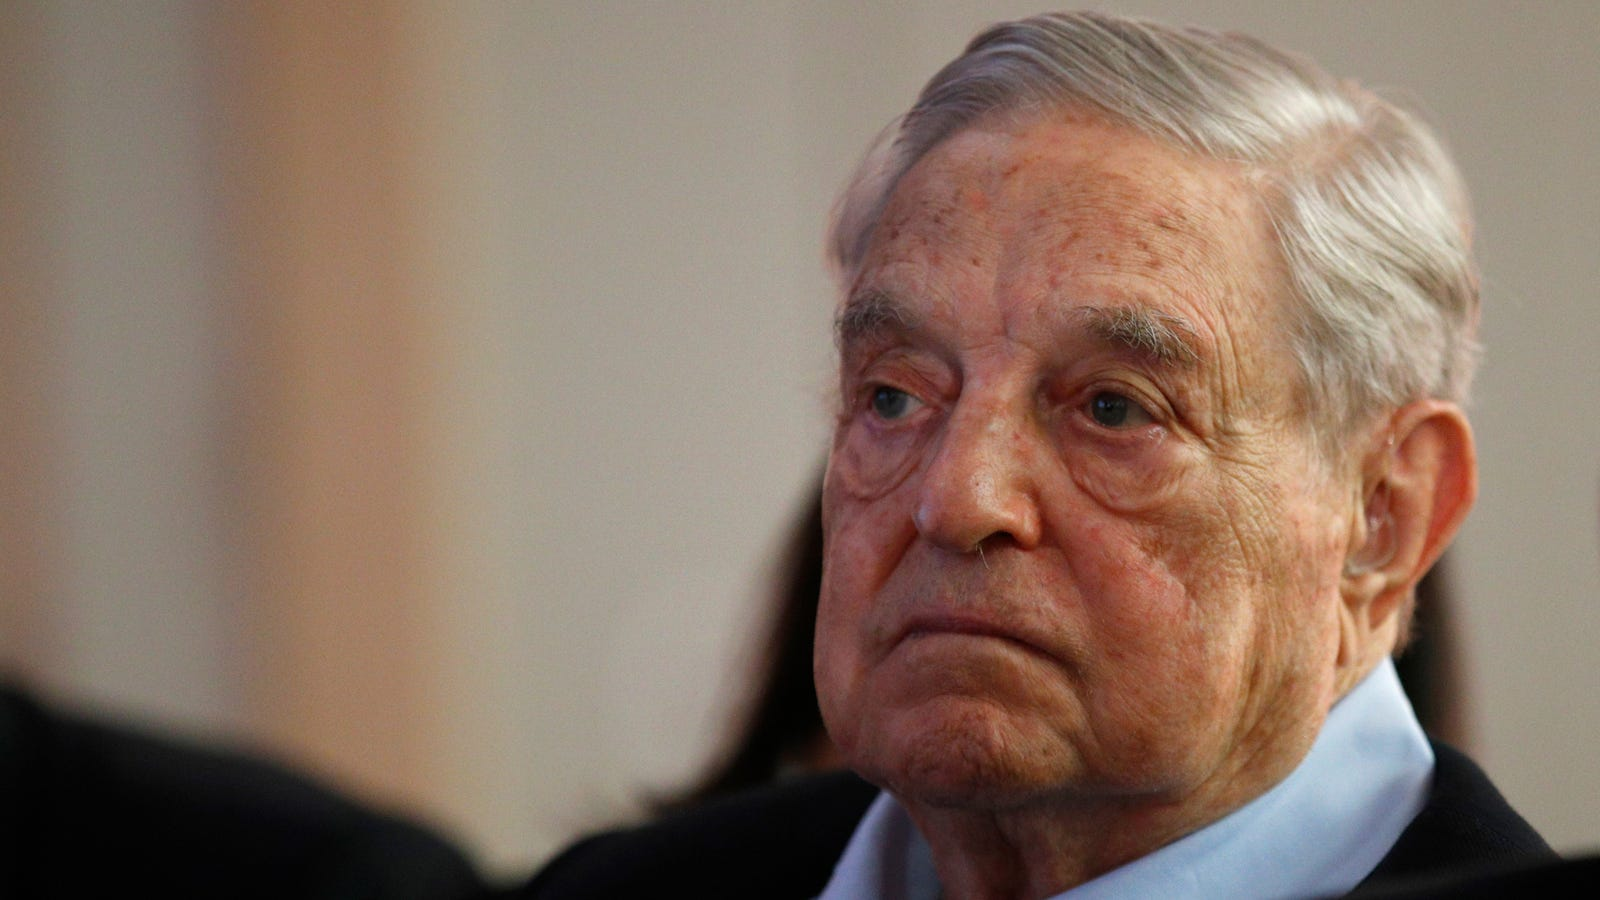 George Soros Foundation Calls Facebook 'Vile,' 'Reprehensible' for Pushing Conspiracy Theories